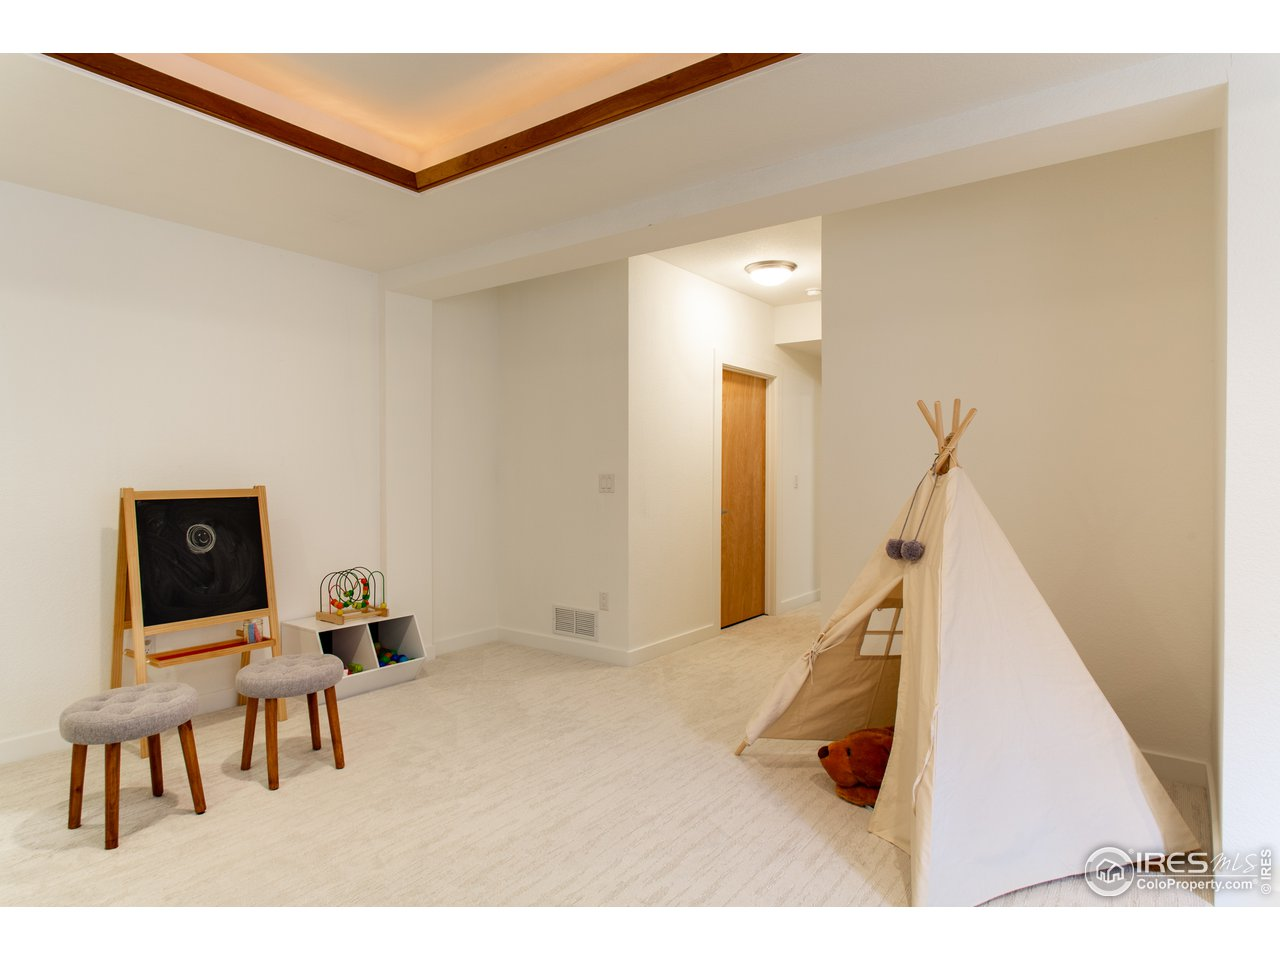 Hall off rec room leading to 4th bedroom and bath